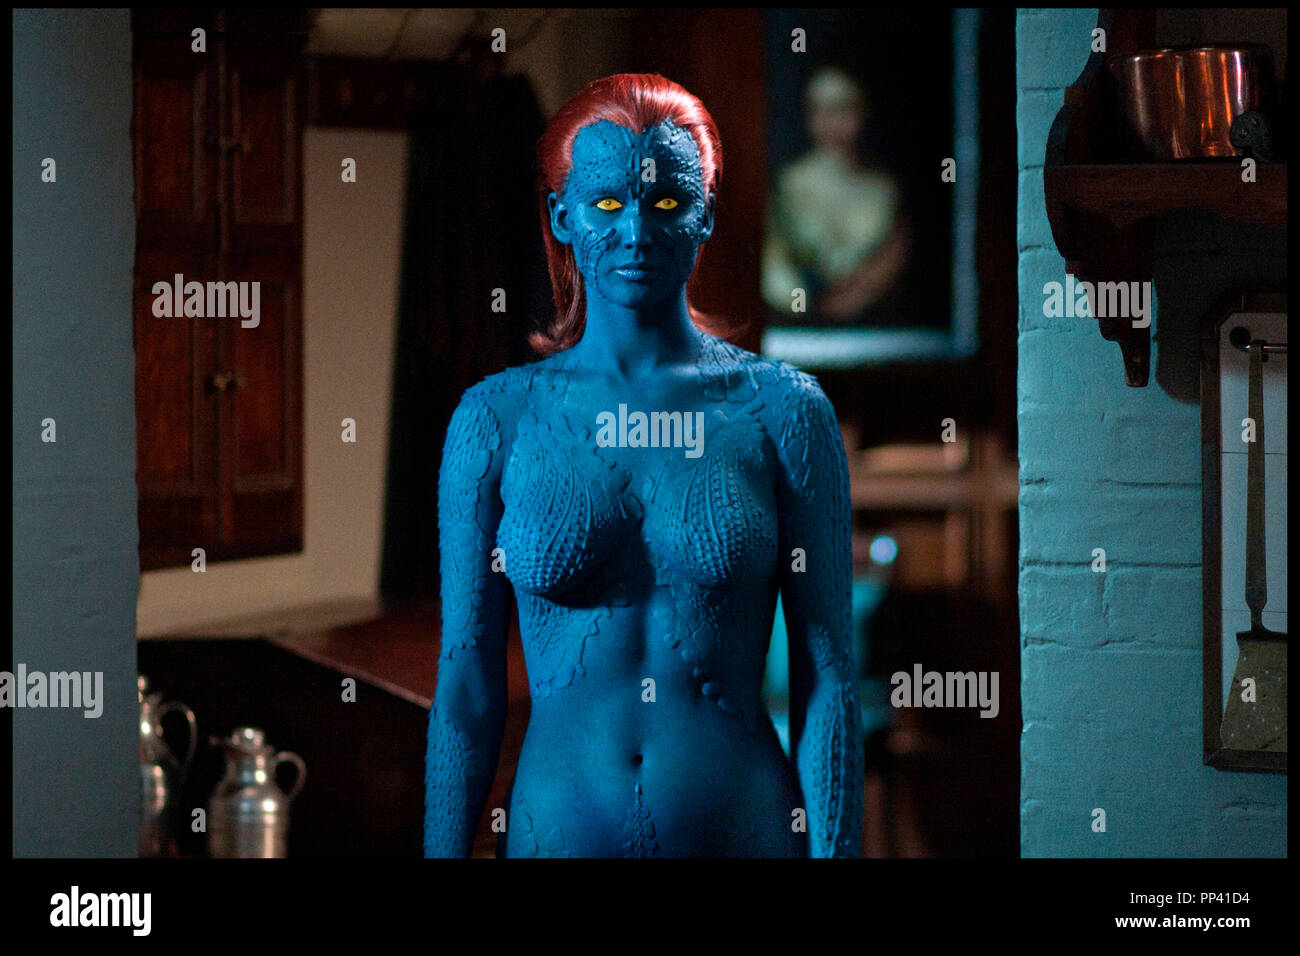 Mystique X Men Stock Photos & Mystique X Men Stock Images ...